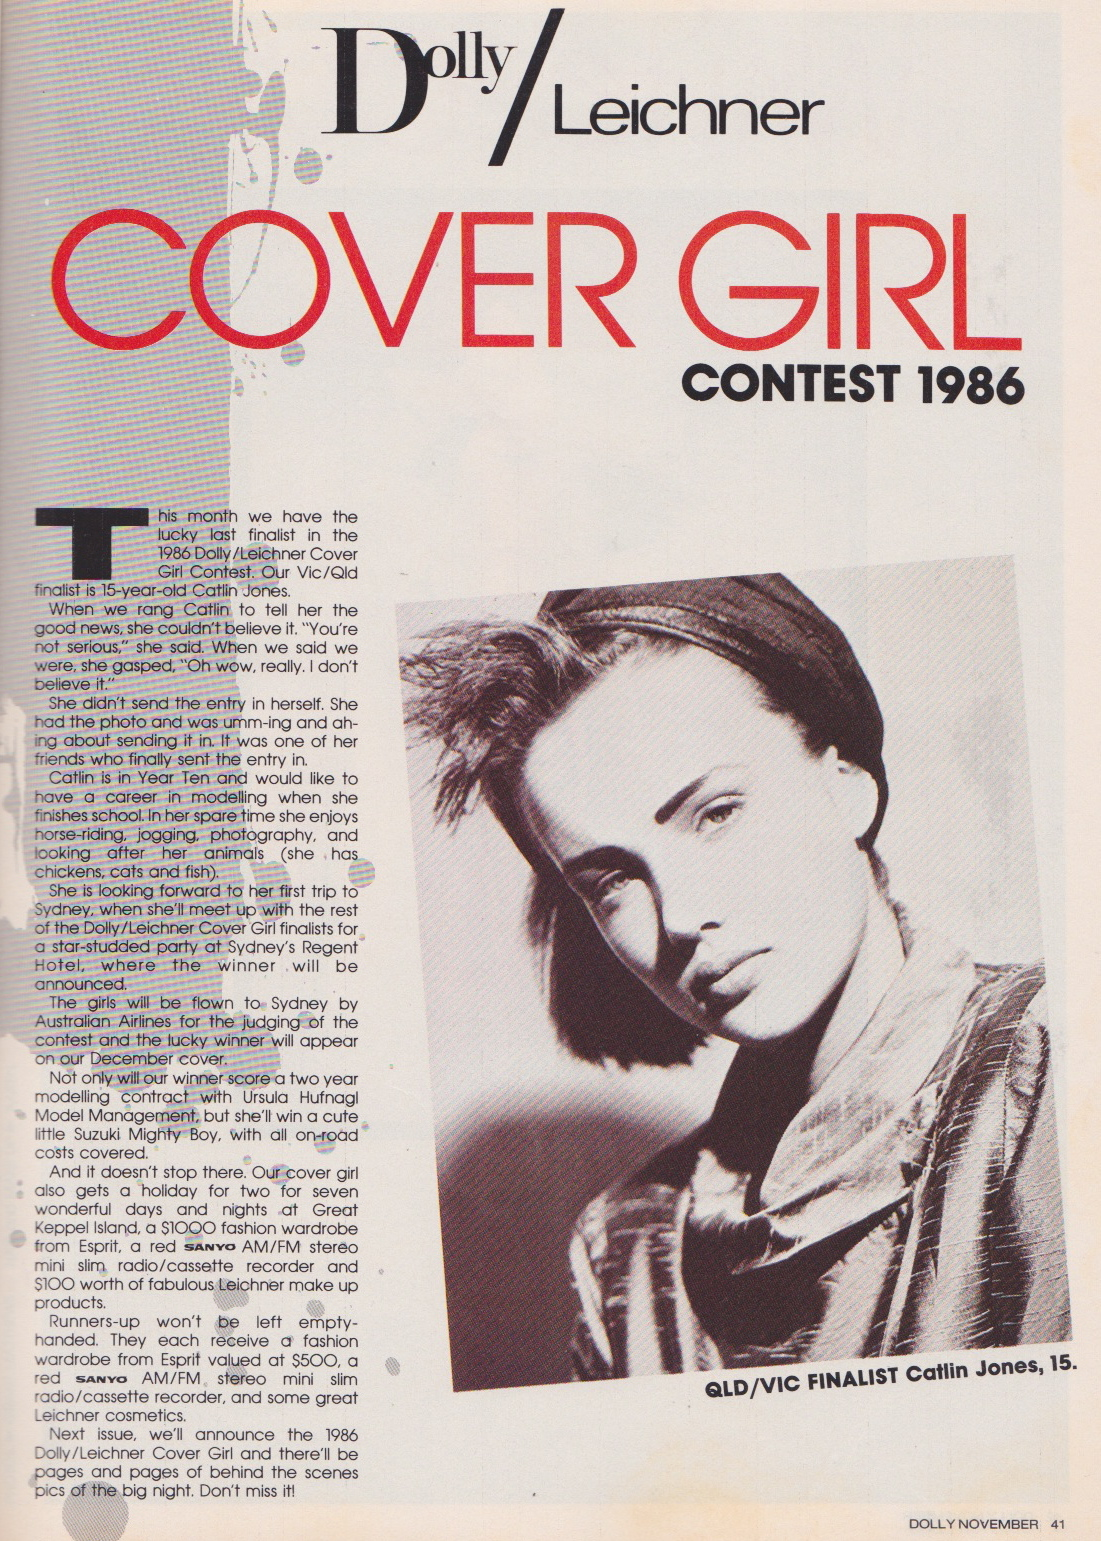 Dolly Covergirl Competition | 1986 Finalists 01.jpeg